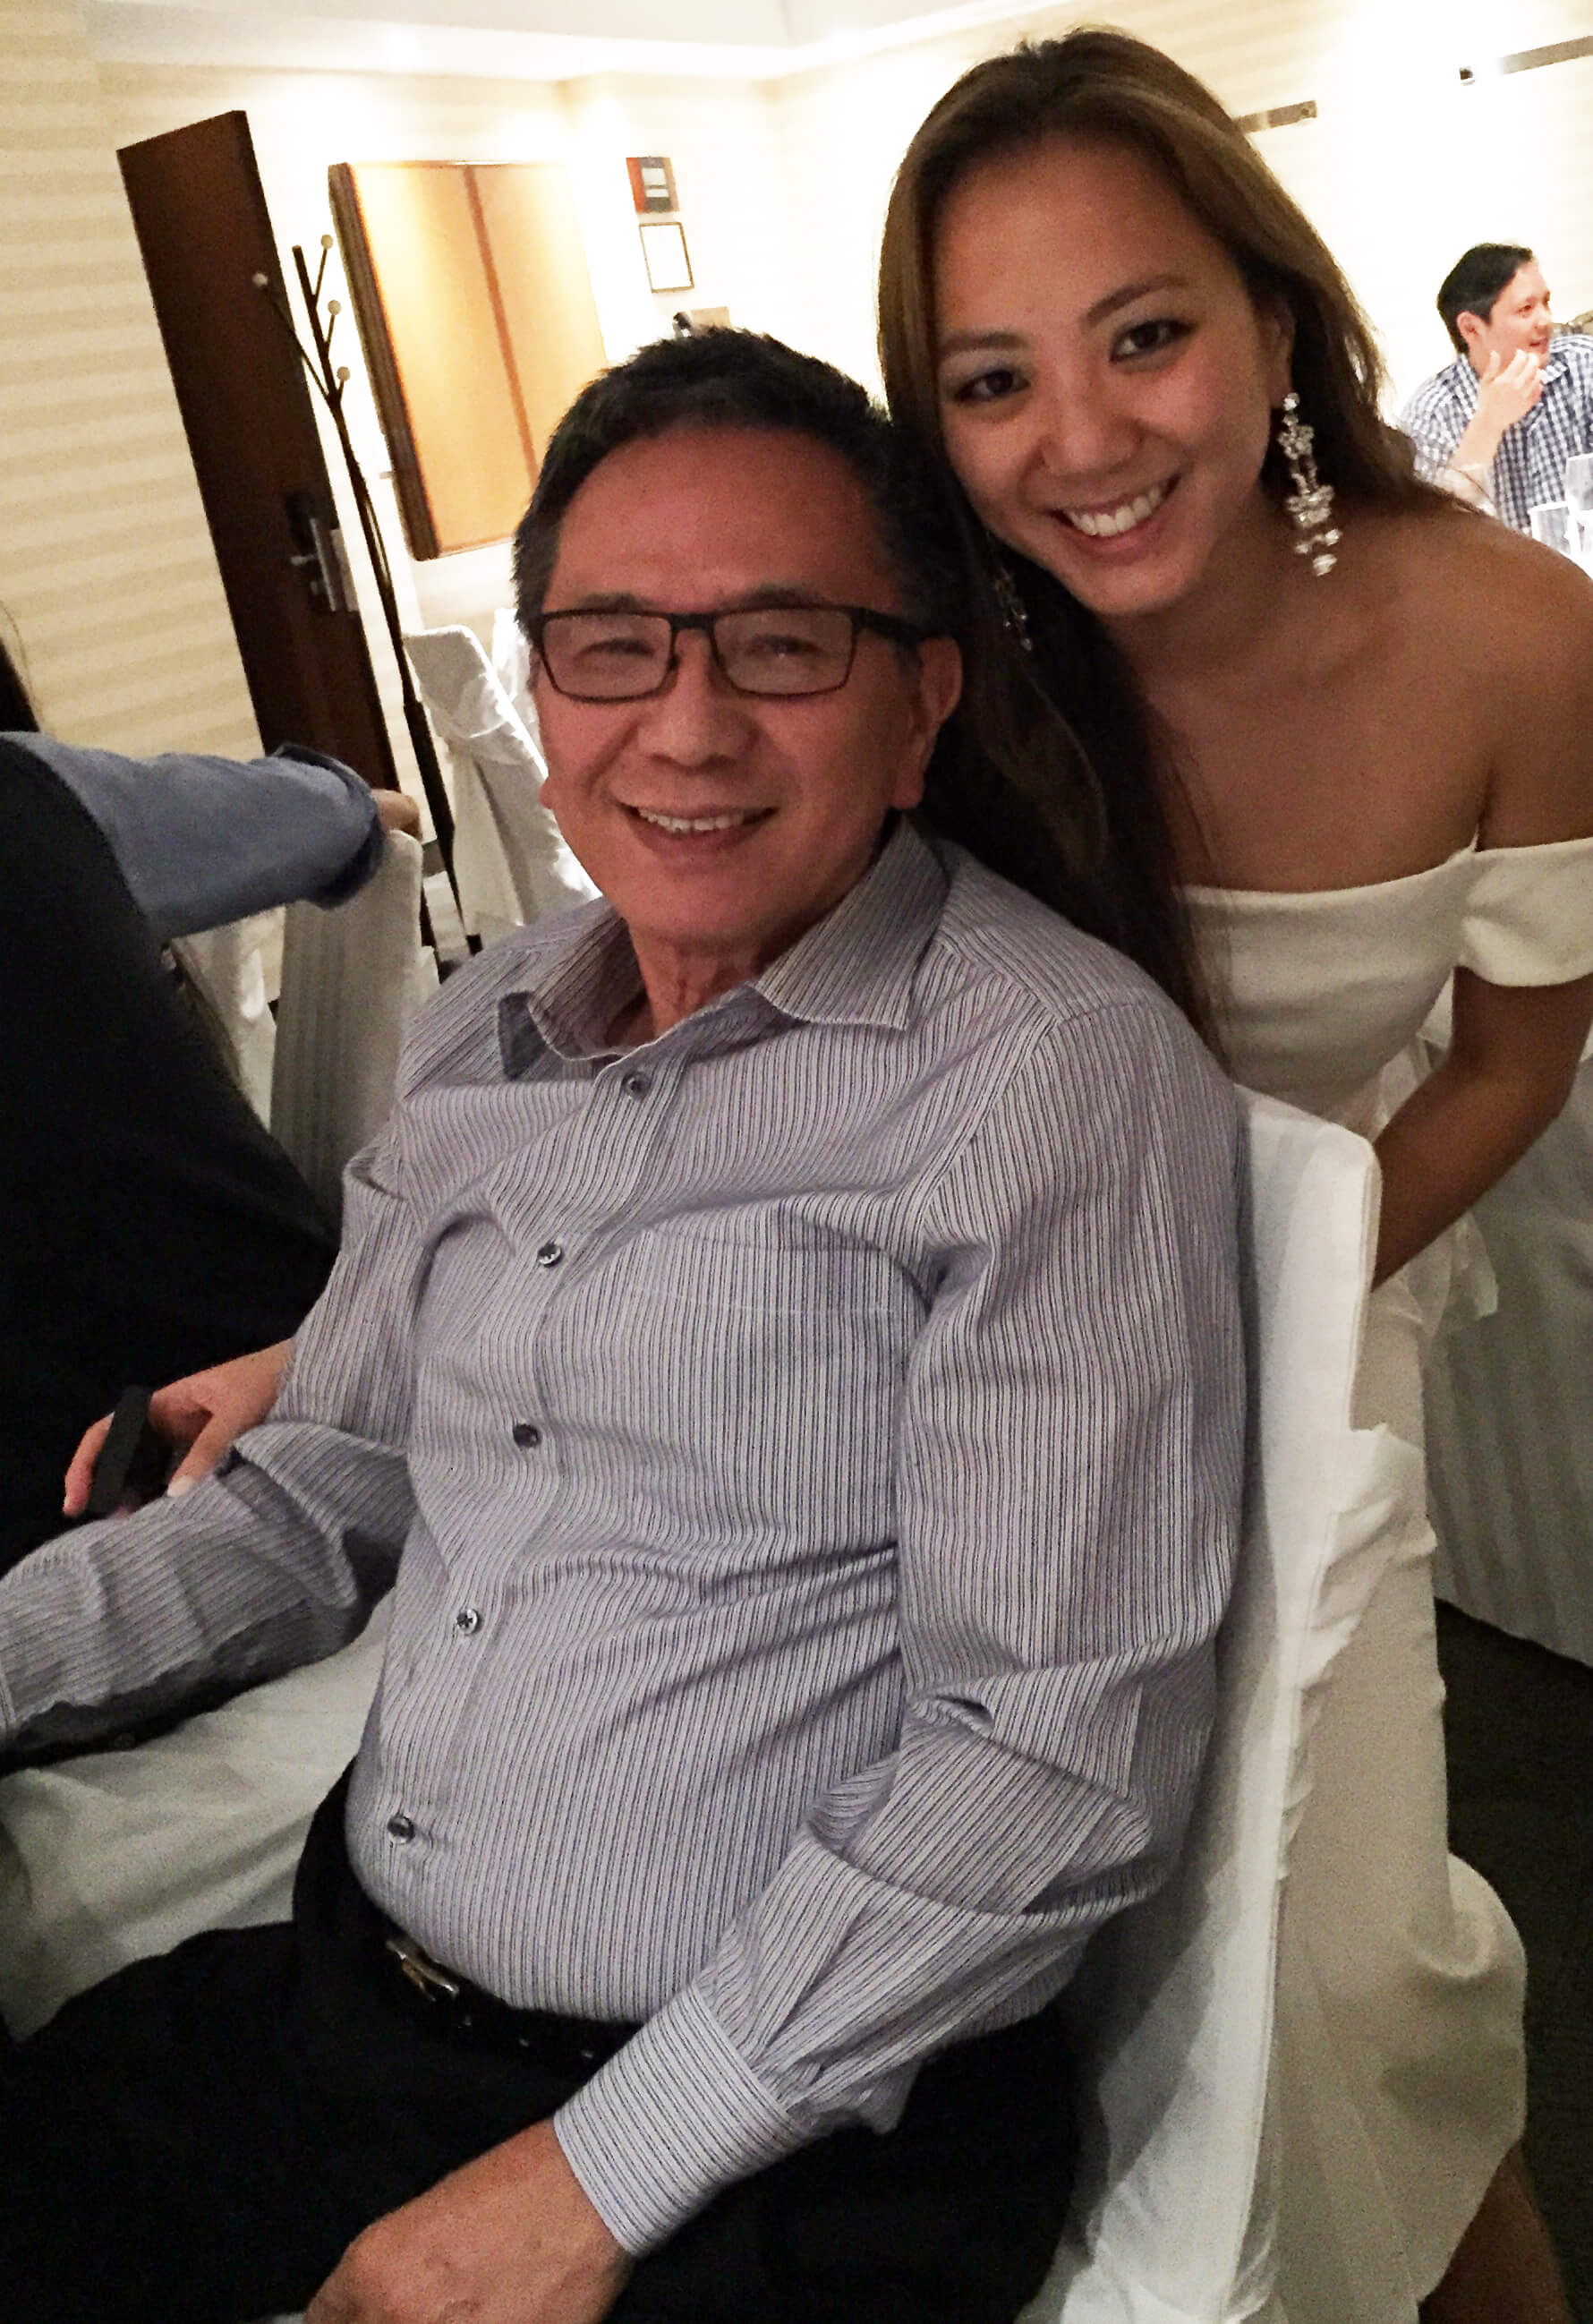 Serena leans behind her father who is seated in a chair at a banquet hall. Her arm is around him and they are both smiling